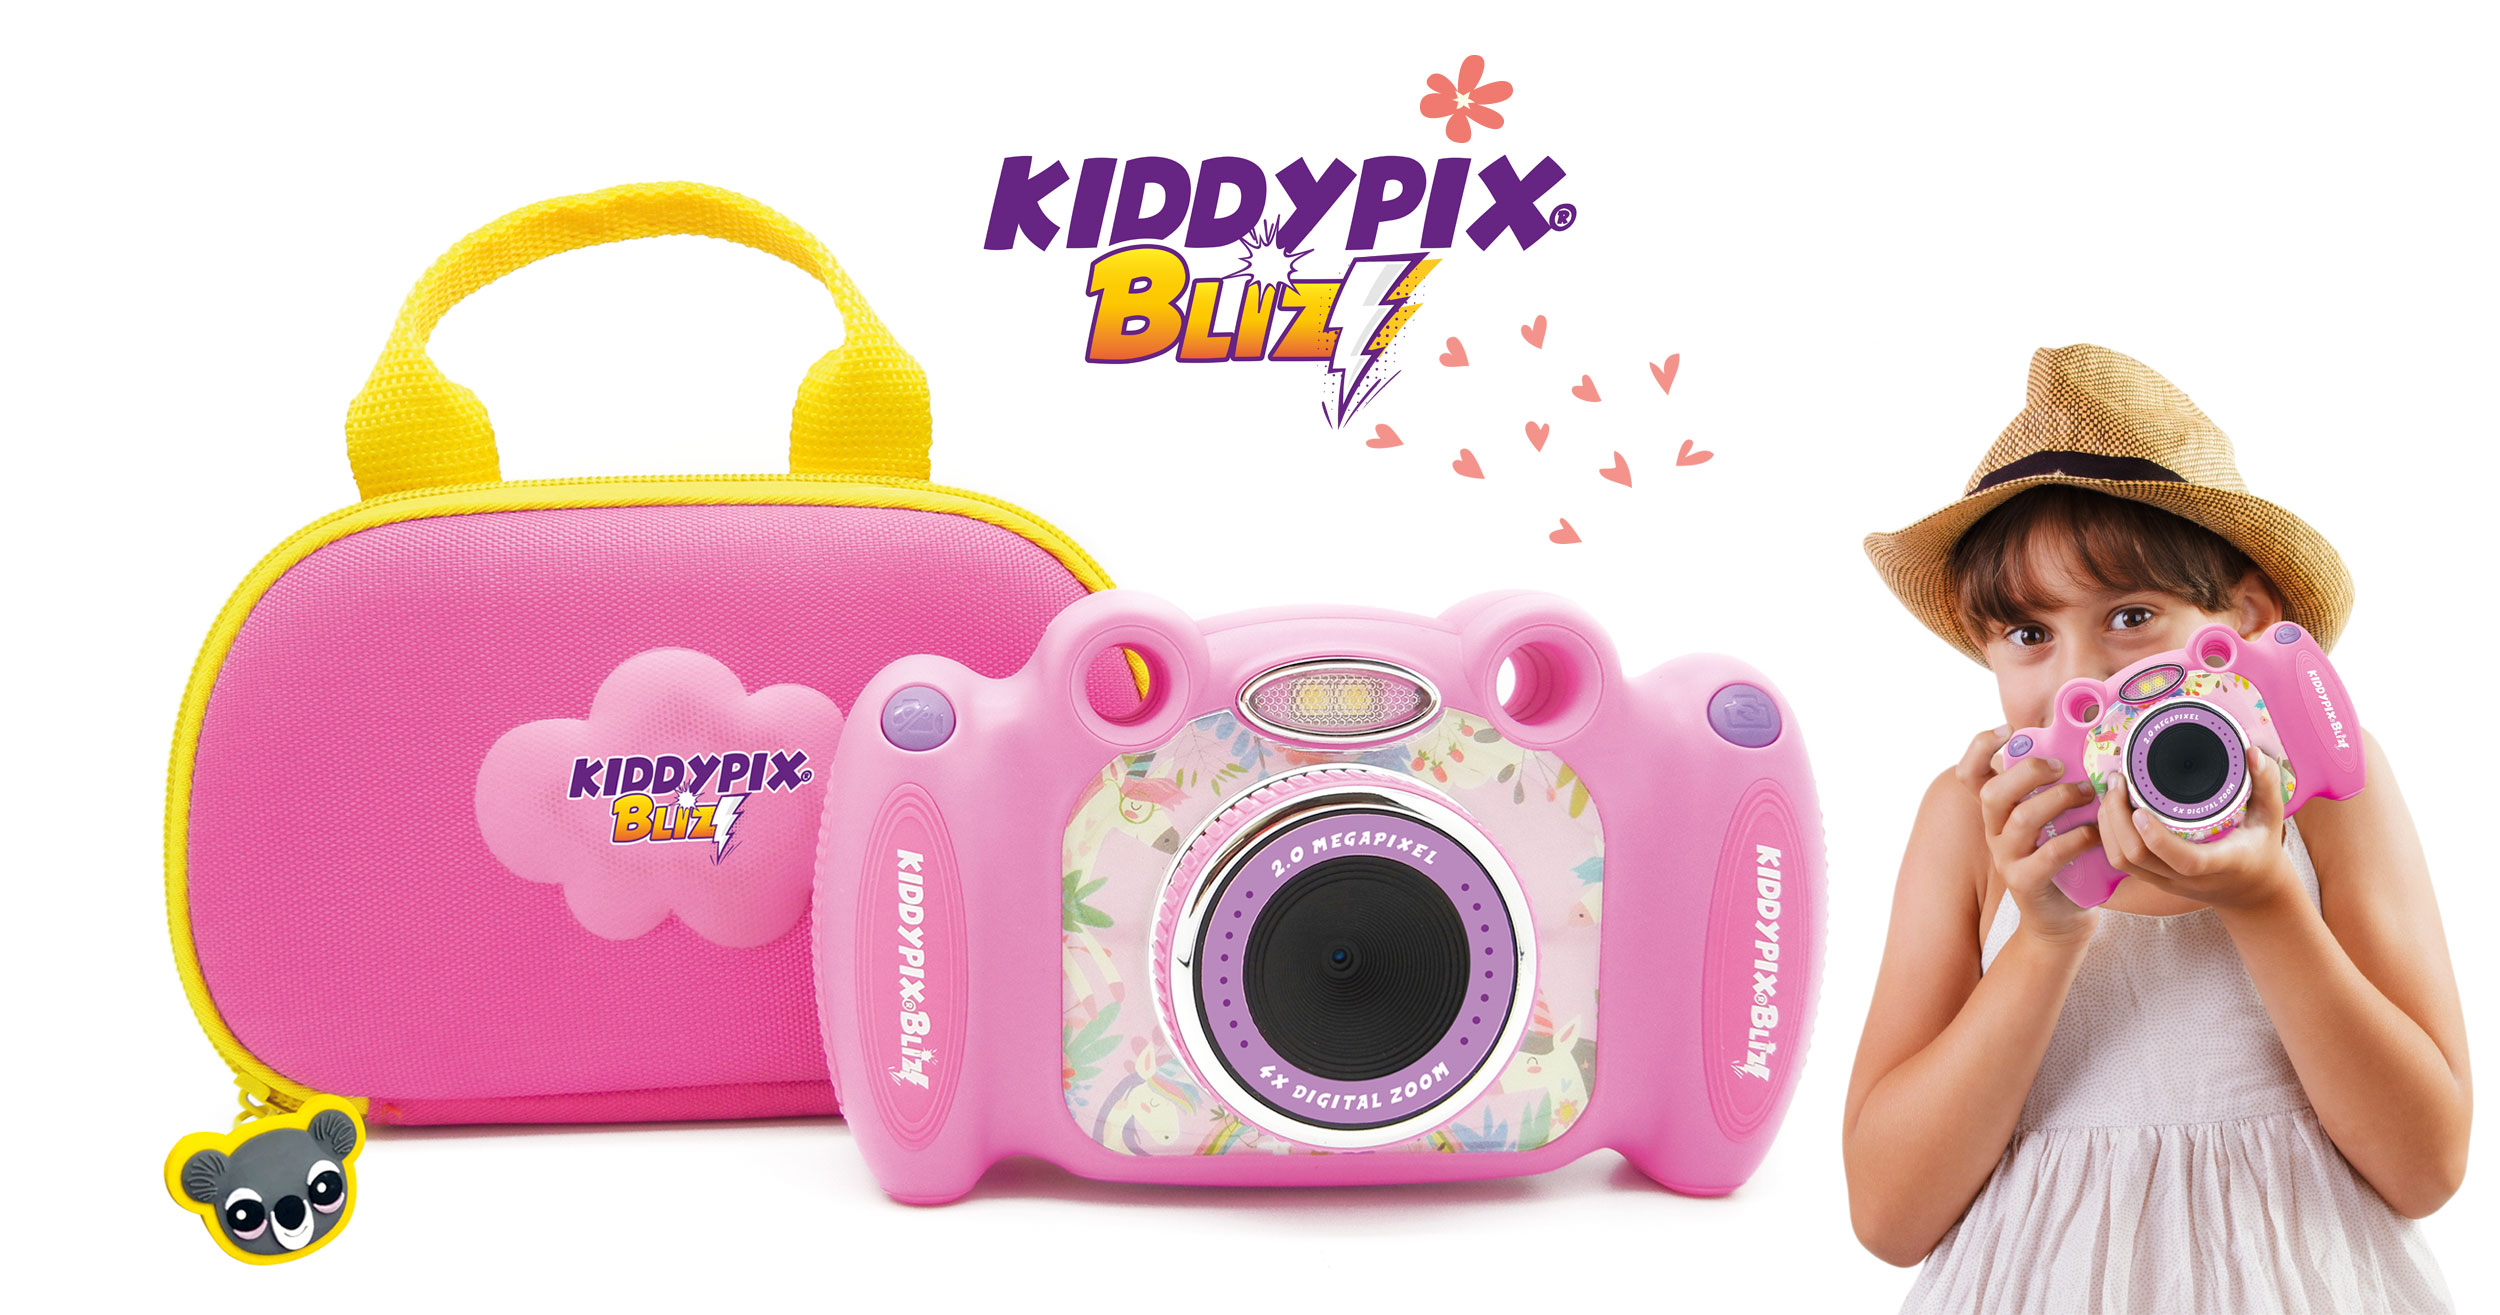 Kiddypix Blizz Pink